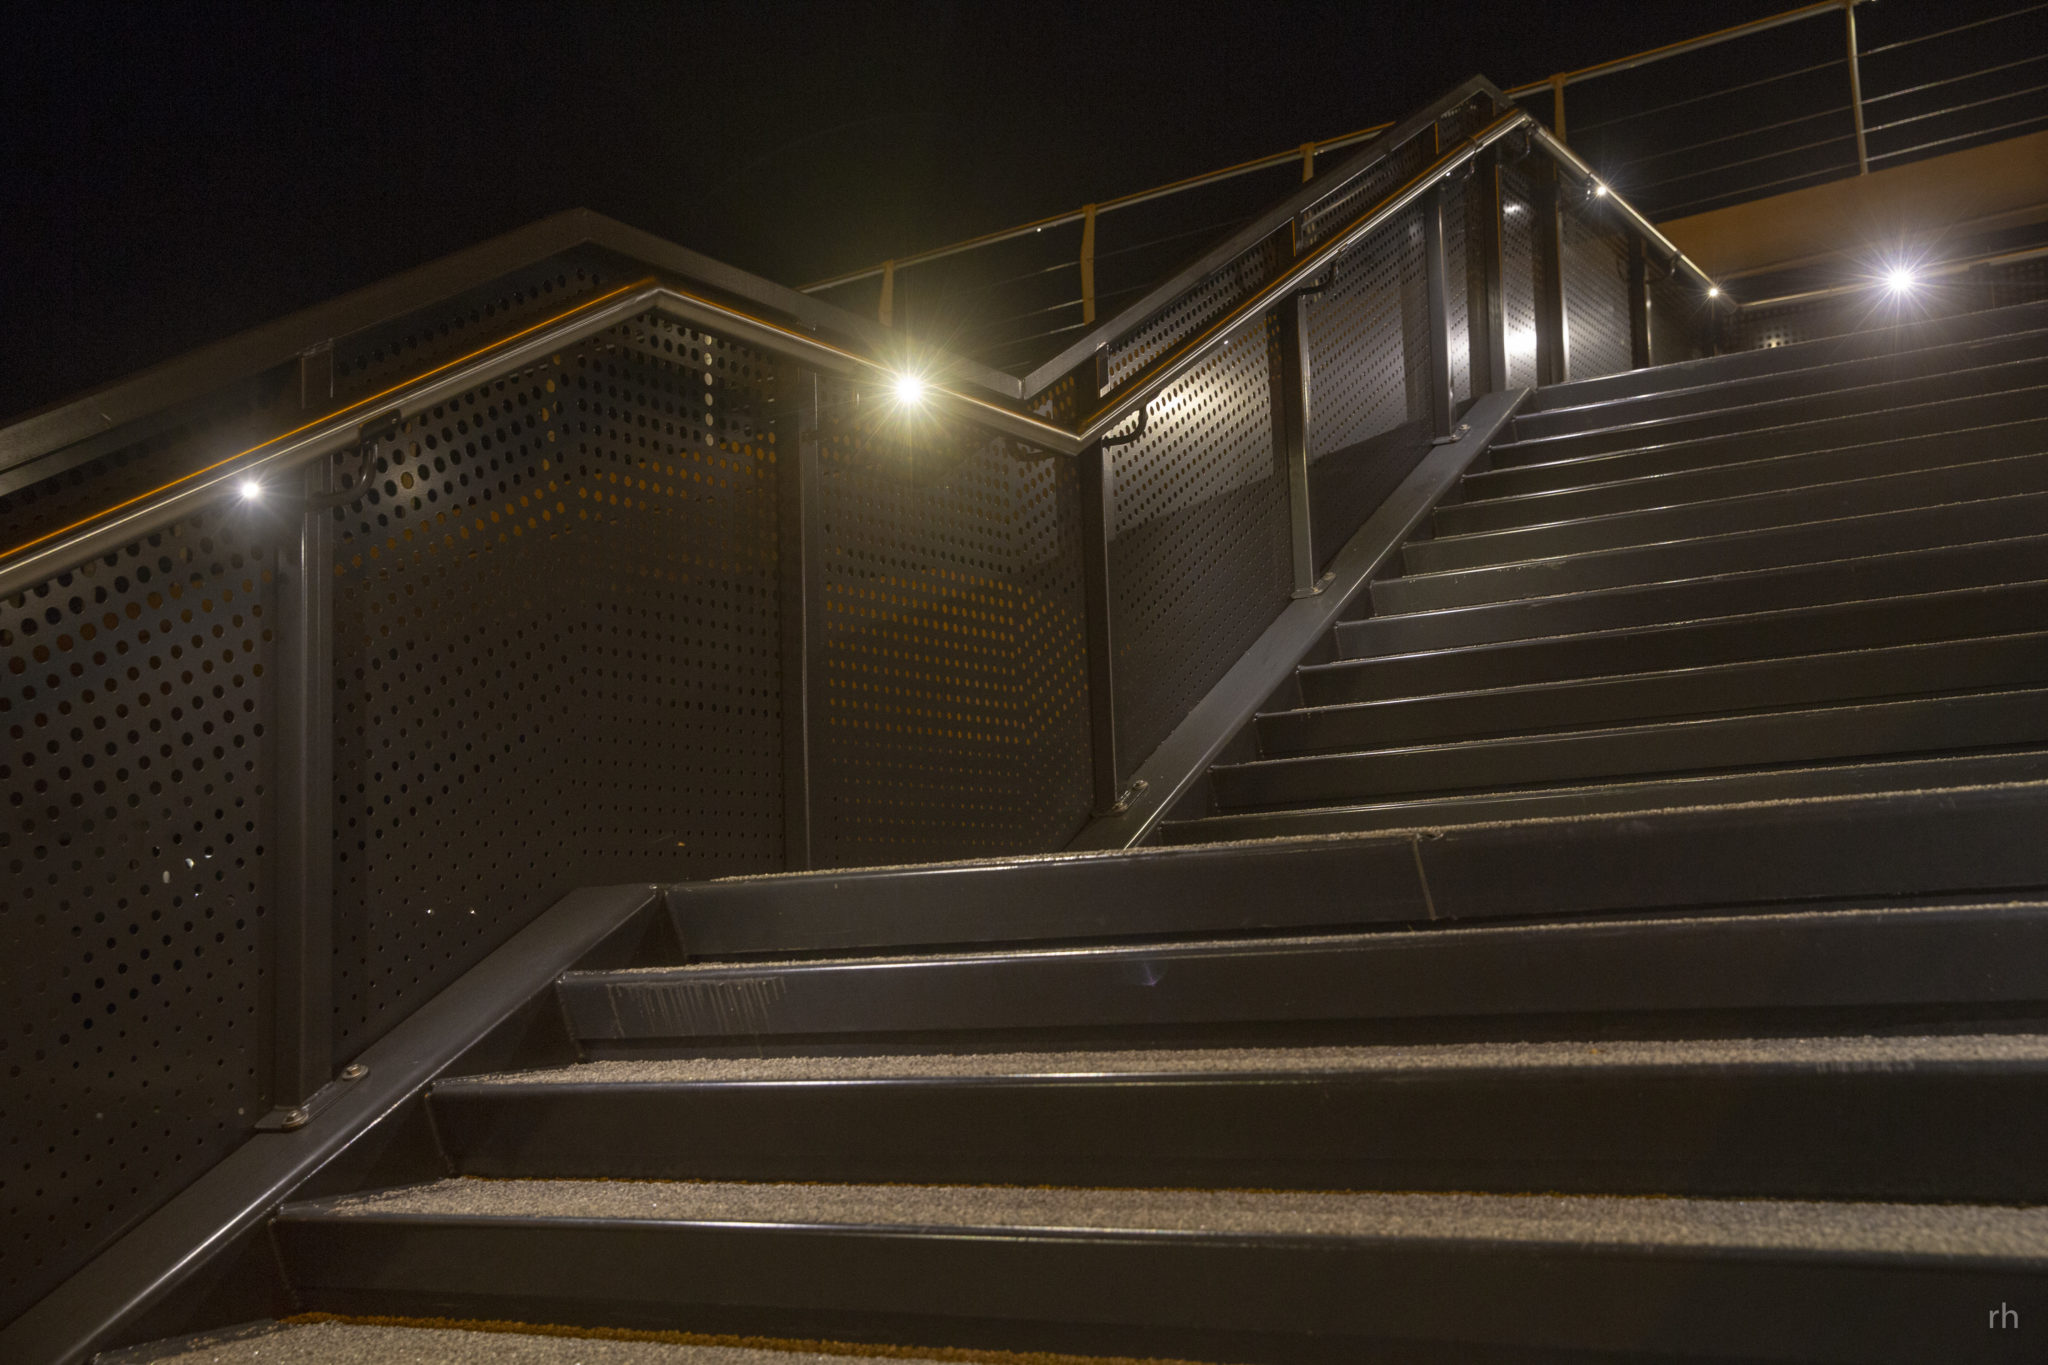 Led verlichting in rvs railing